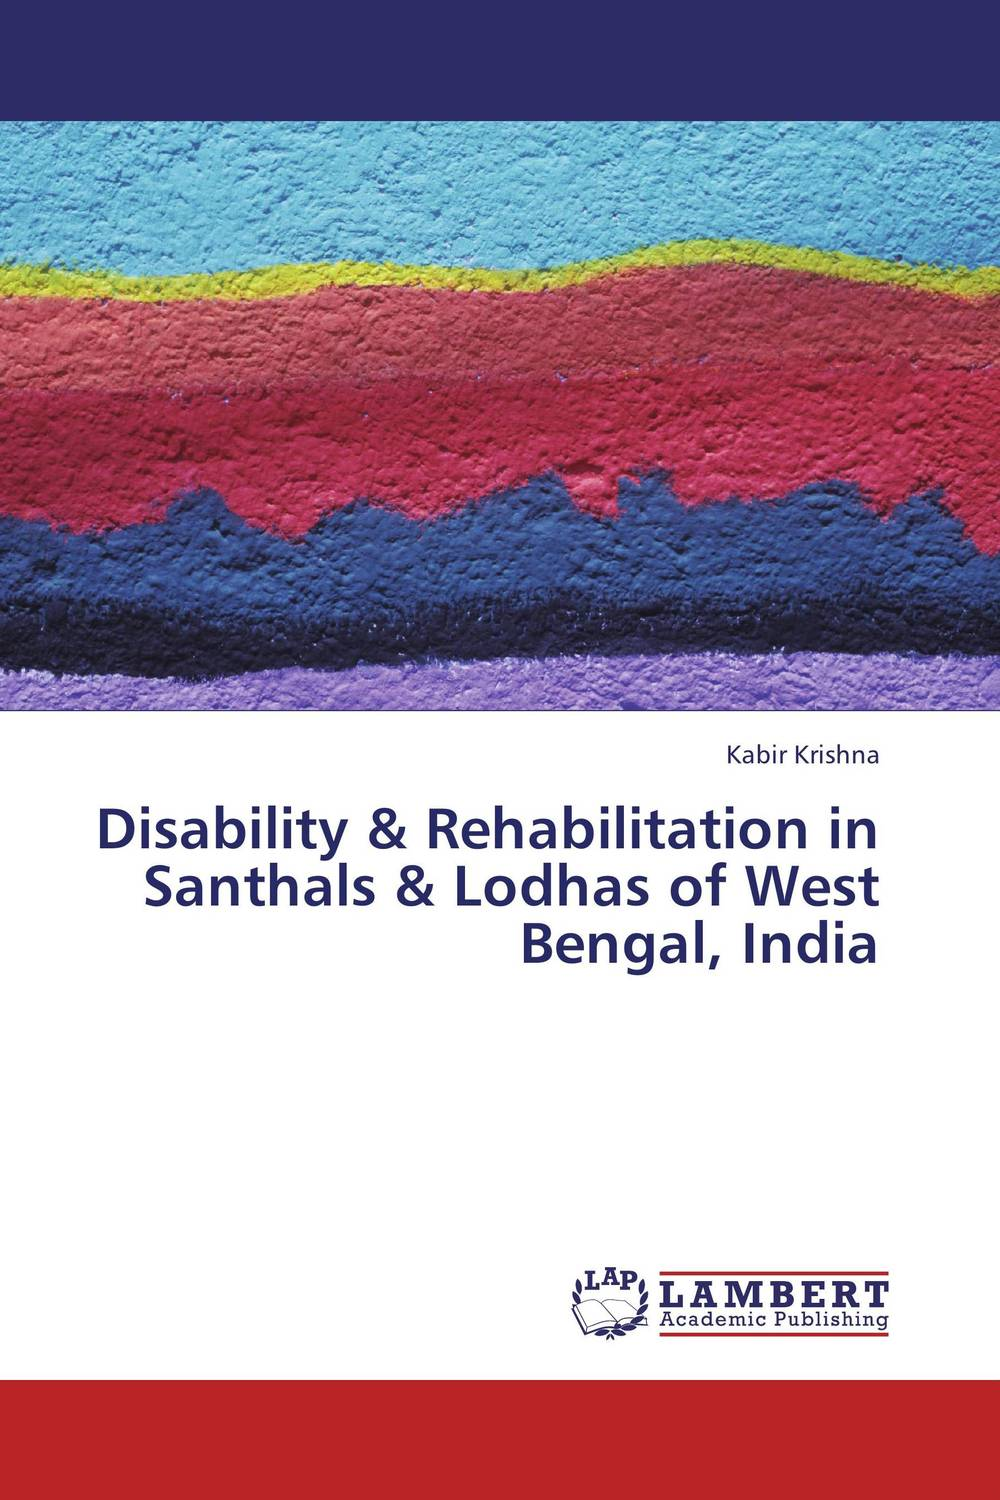 Disability & Rehabilitation in Santhals & Lodhas of West Bengal, India renu addlakha contemporary perspectives on disability in india